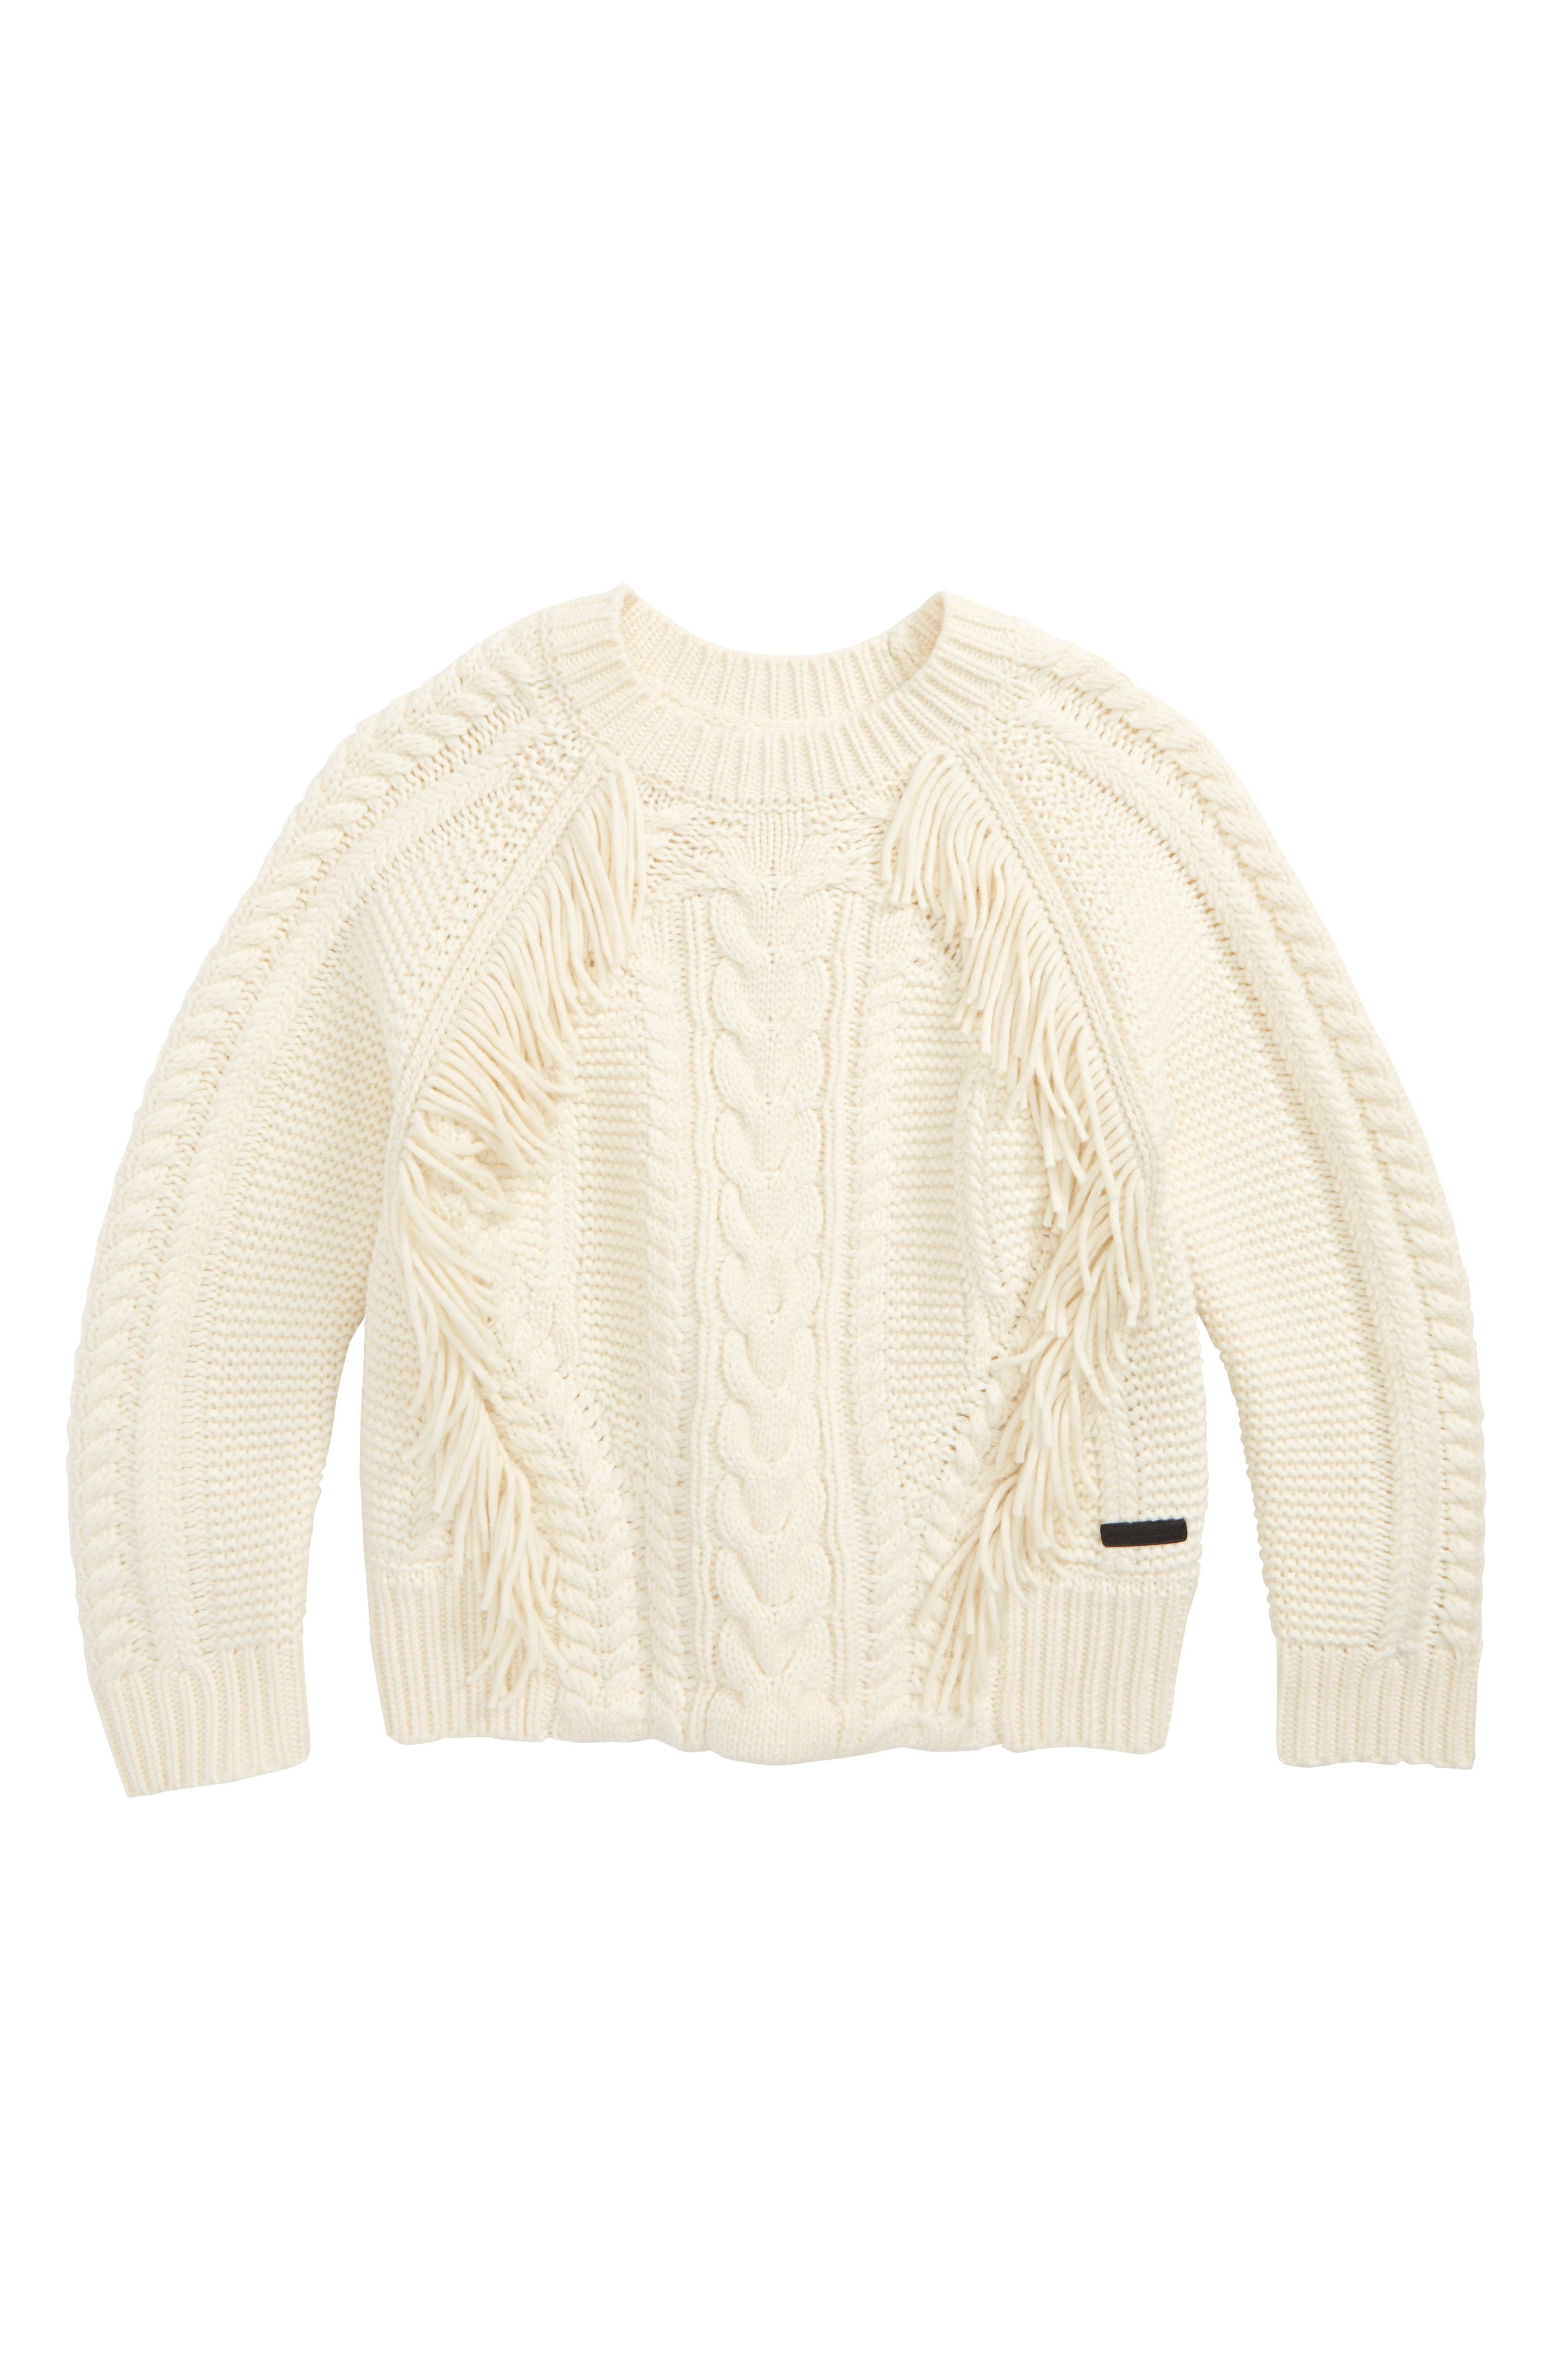 Natasia Cable Knit Sweater,                             Main thumbnail 1, color,                             903